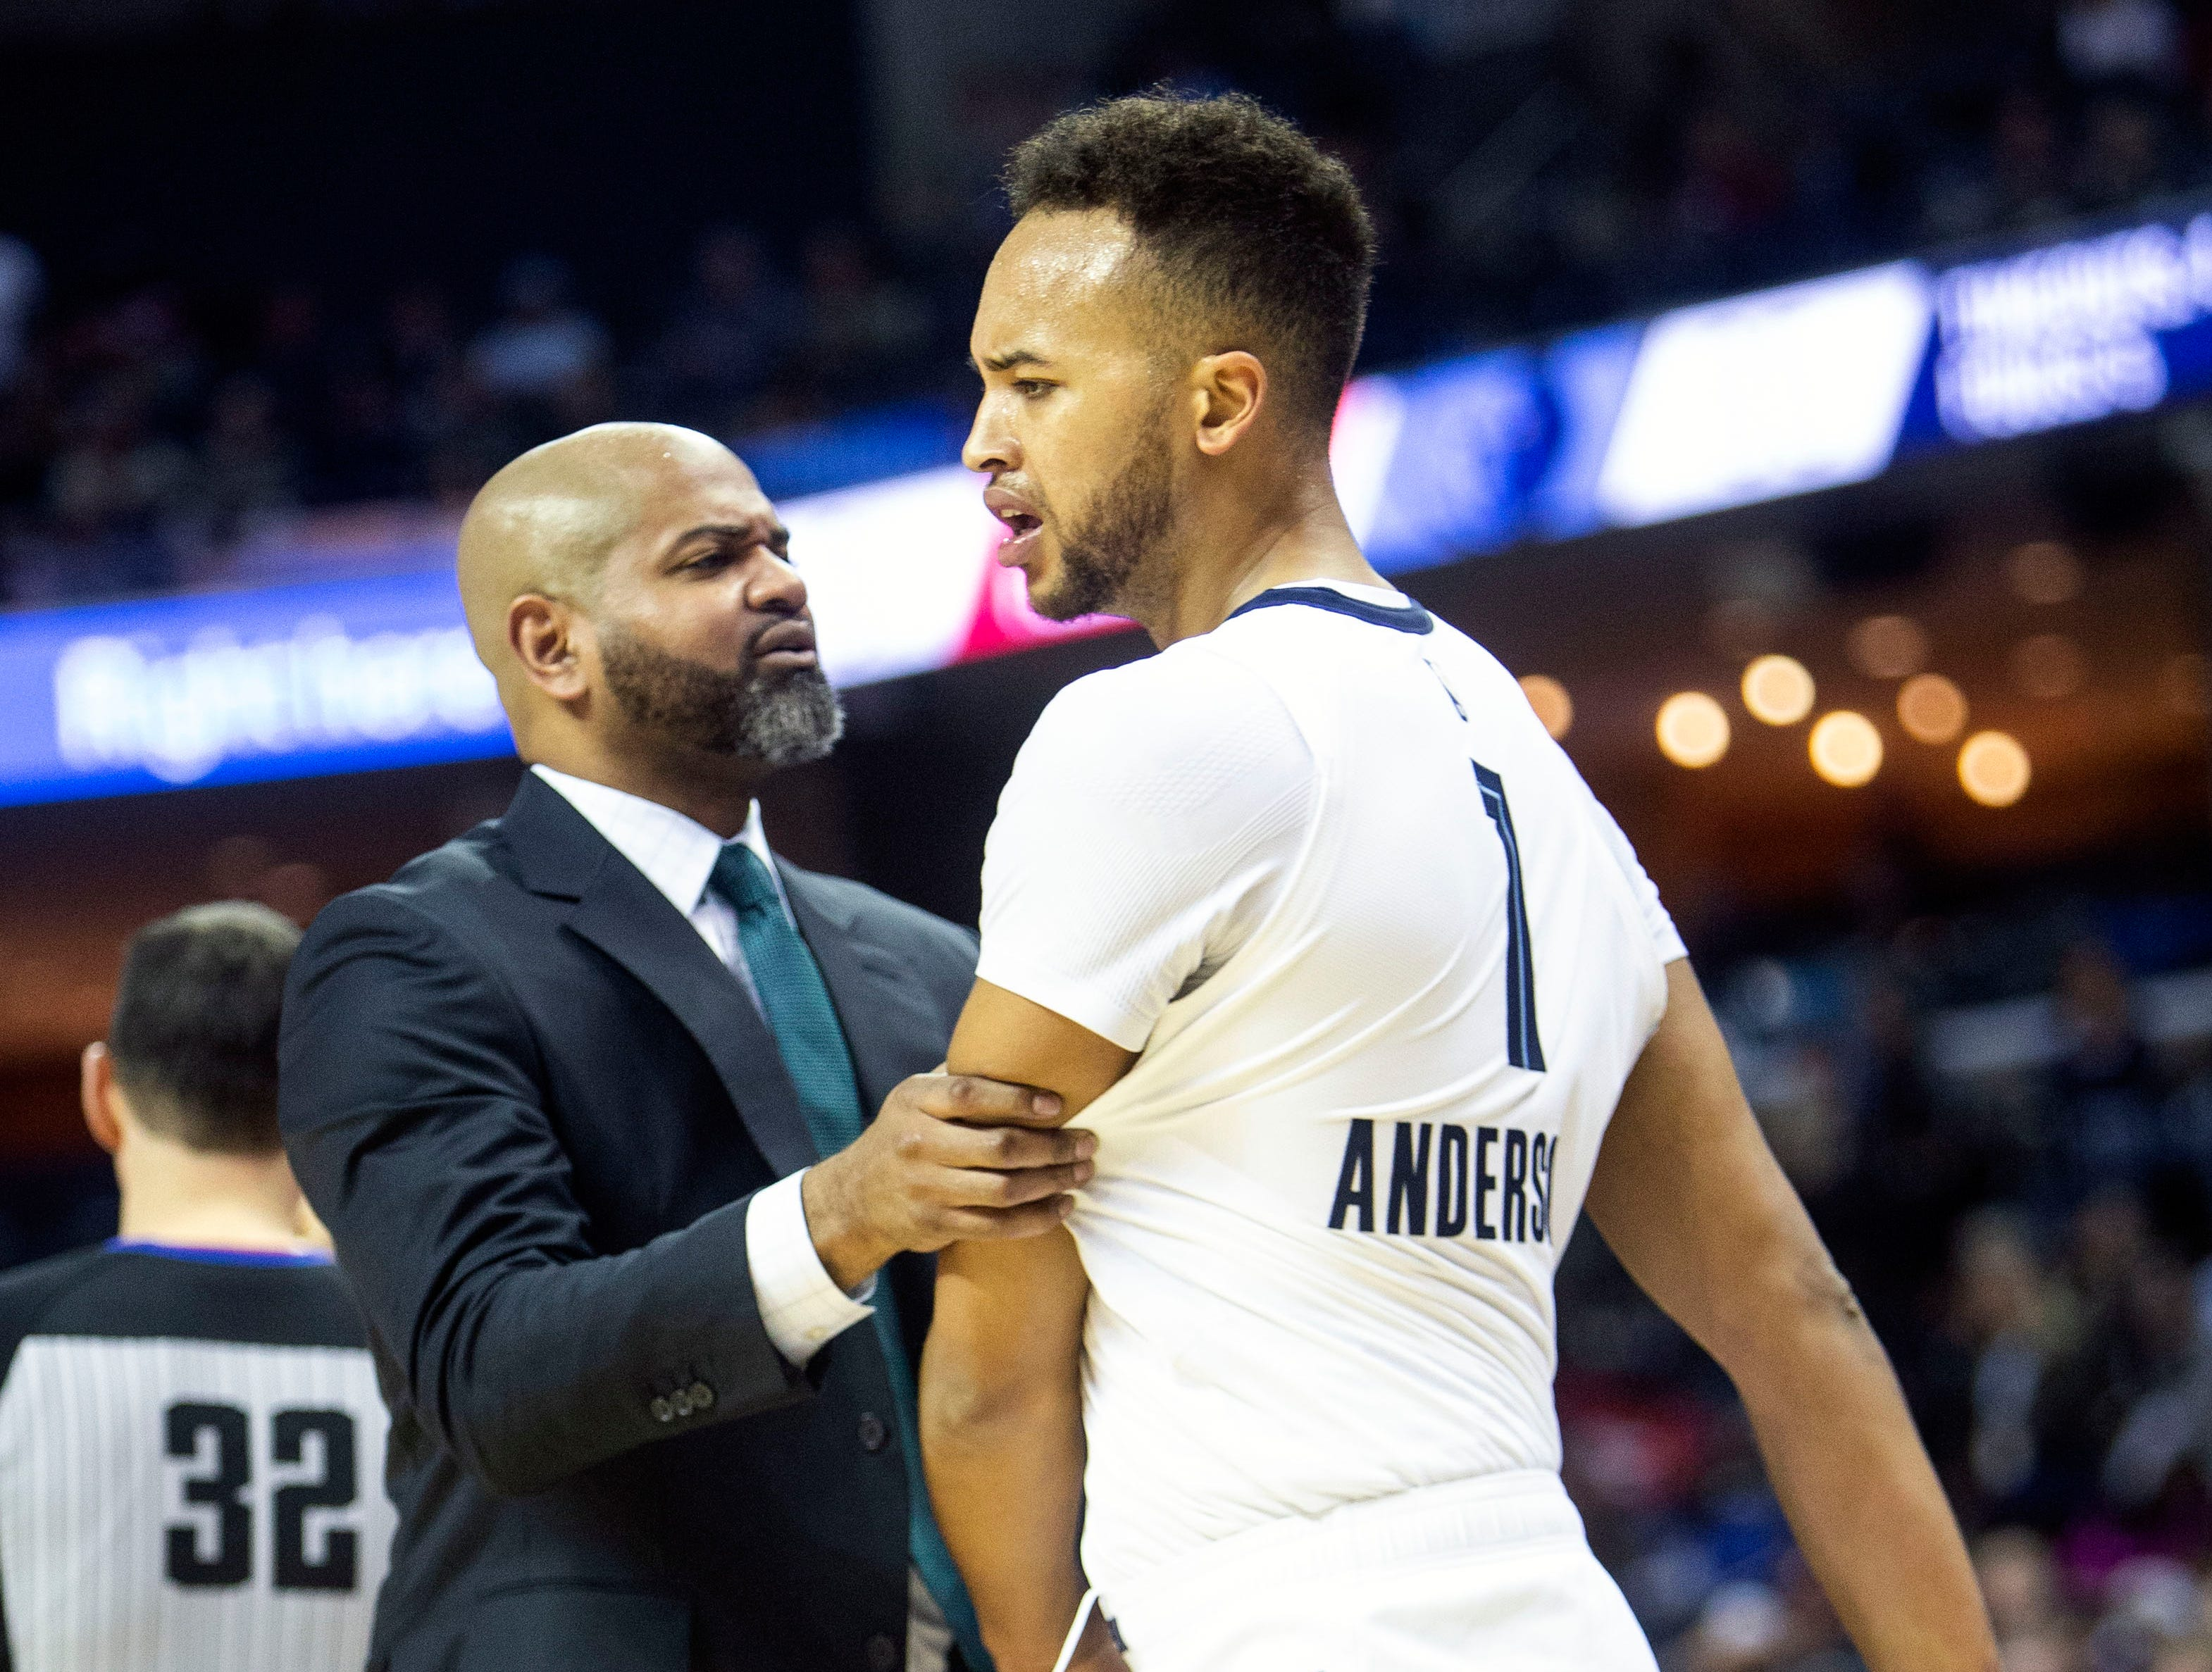 Memphis Grizzles head coach J.B. Bickerstaff and guard Kyle Anderson react to a call during a NBA basketball game between the Memphis Grizzlies and the  Los Angeles Clippers in the Fedex Forum, Wednesday, Dec. 5, 2018.